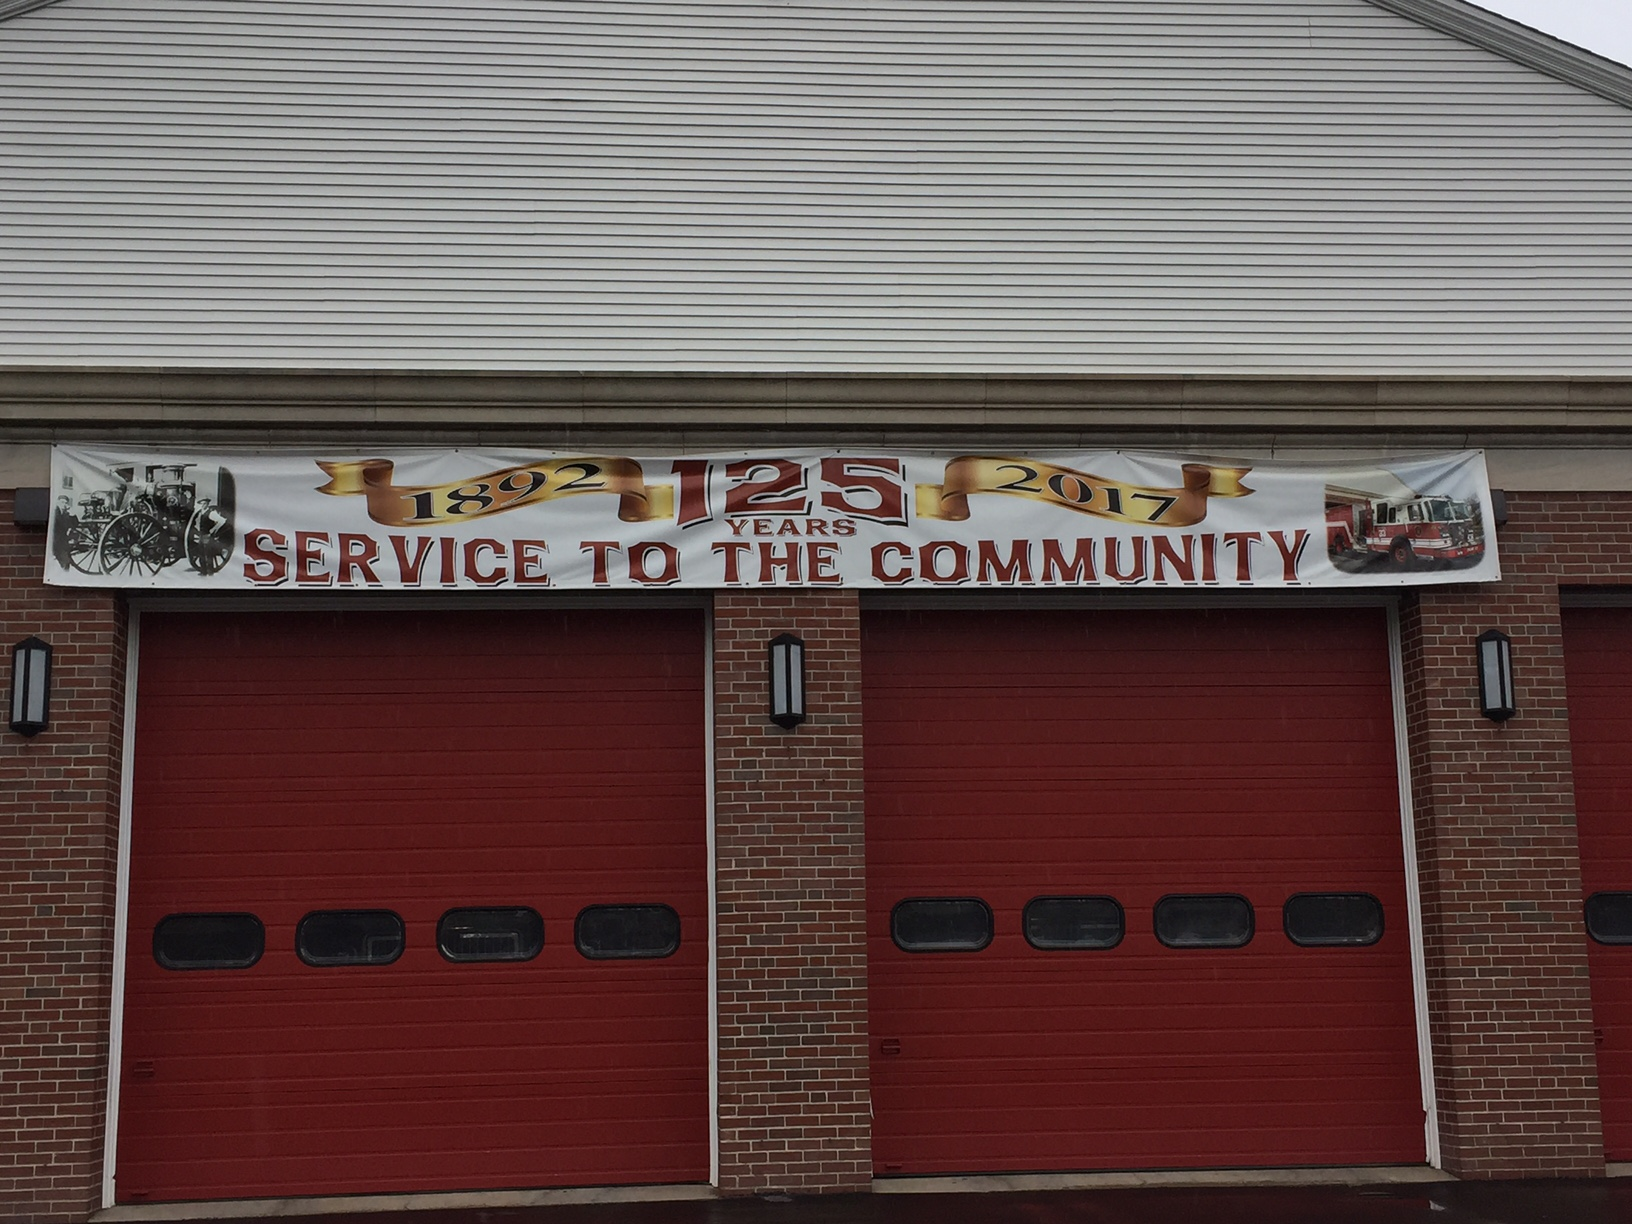 Hazardville Fire Department's 125th Anniversary banner. Enfield, CT